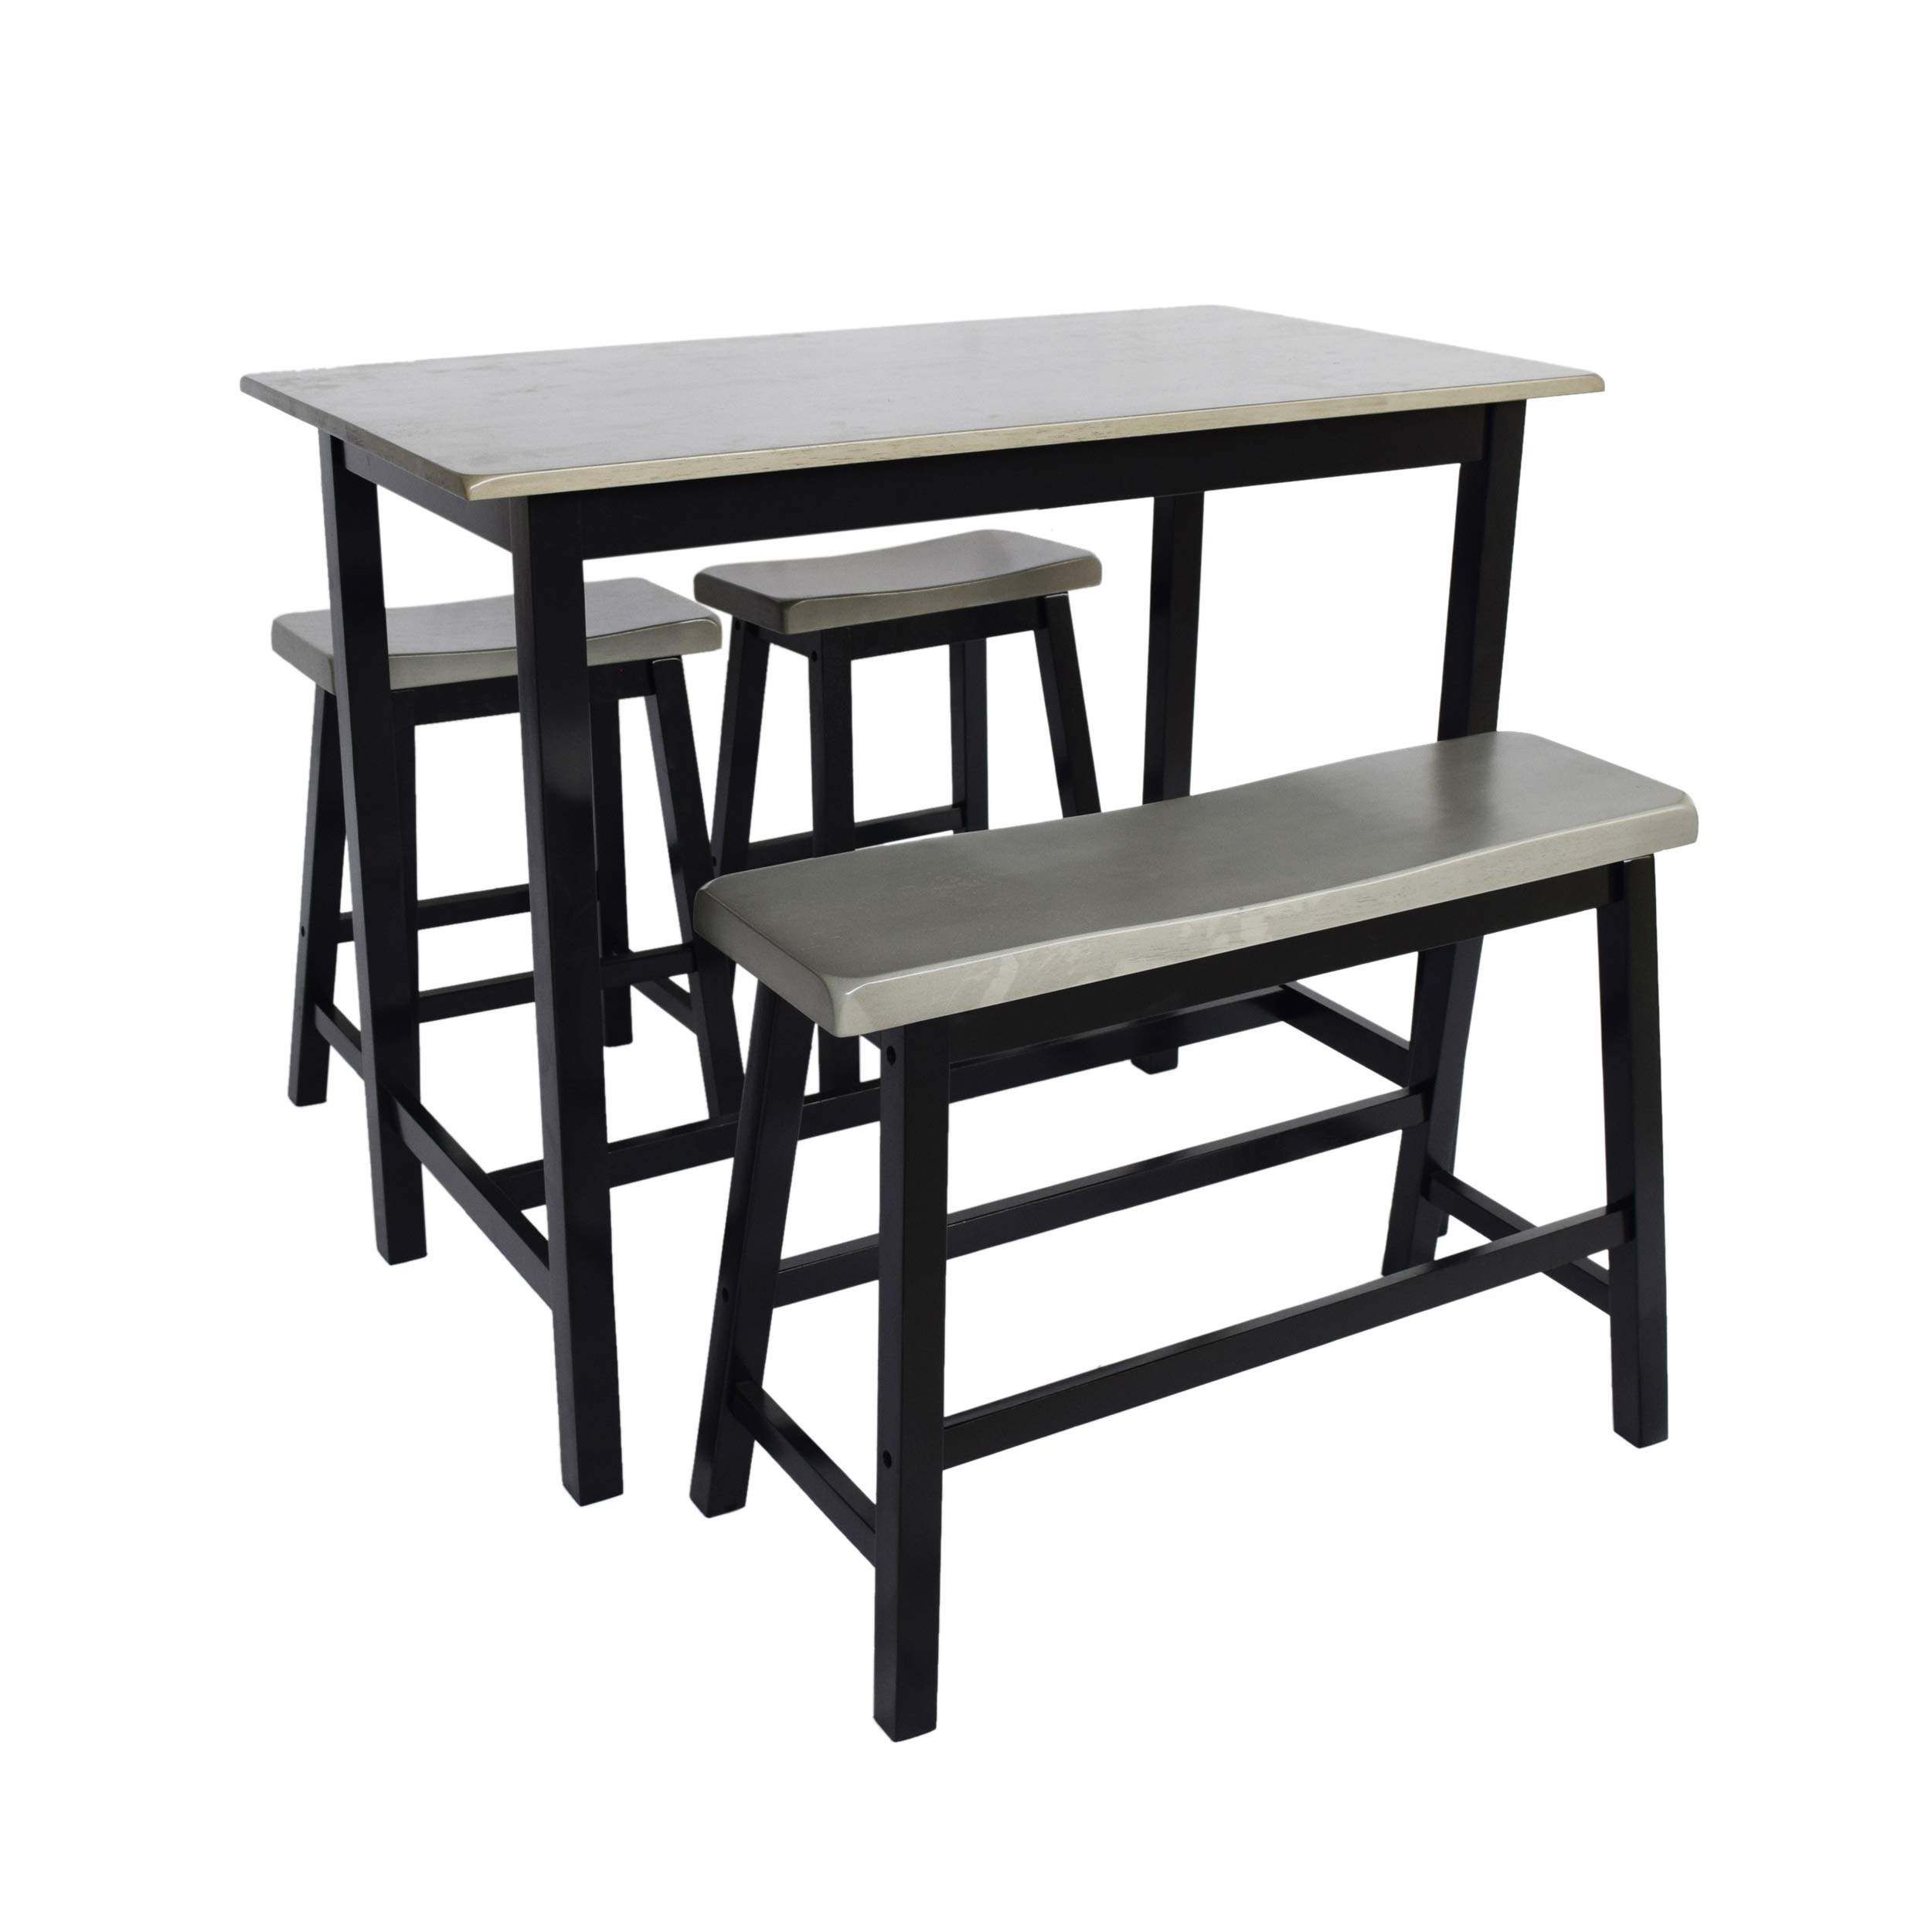 Great Deal Furniture Toluca Farmhouse 4 Seater Rubber Wood Counter Dining Set, Gray and Black by Great Deal Furniture